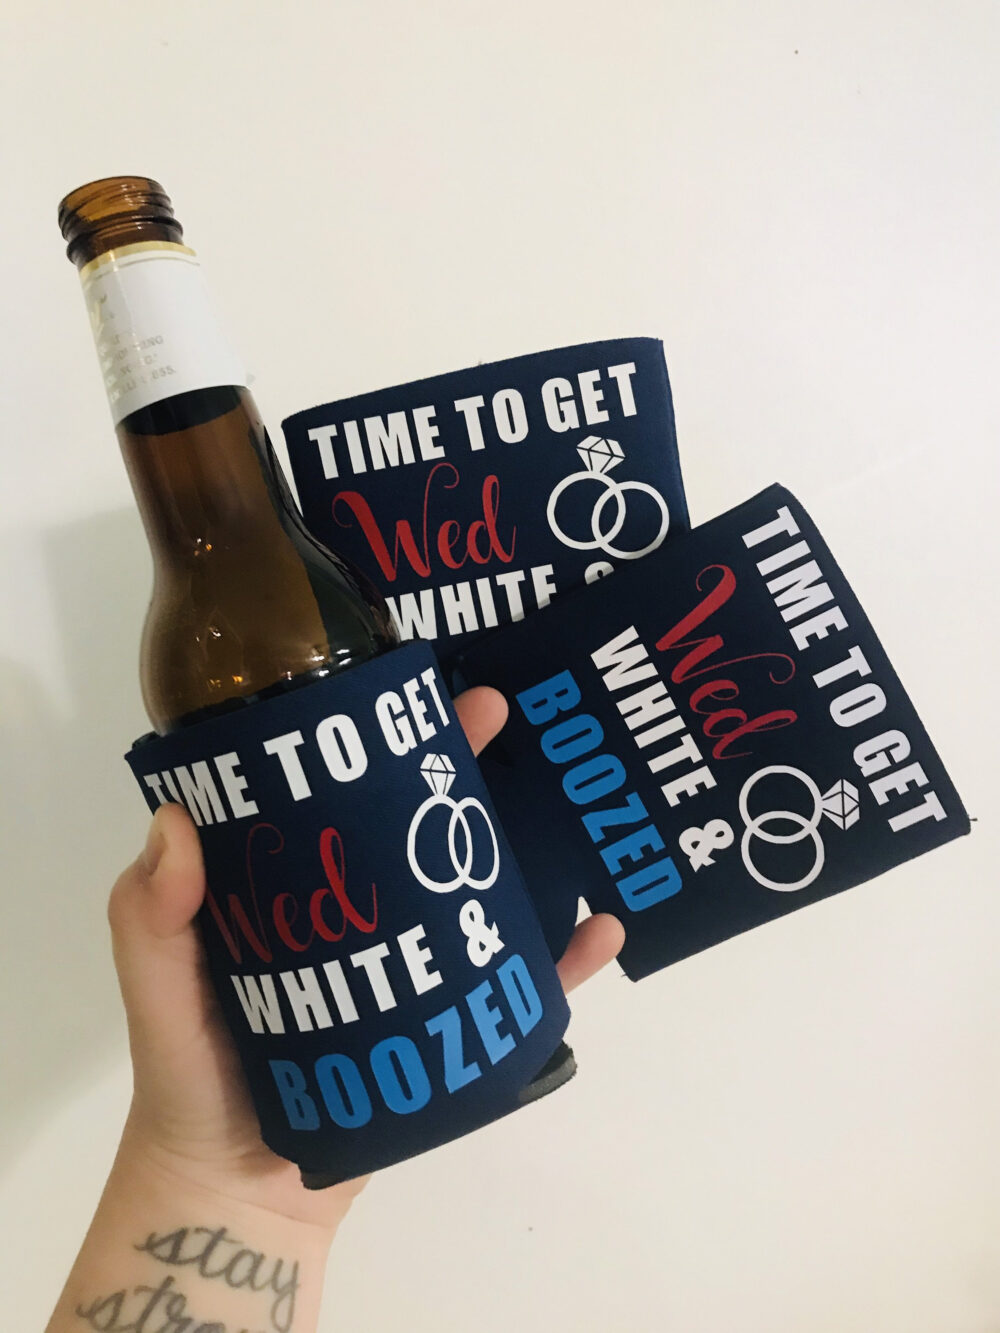 Custom Can Coolers - Covers Wedding Favors Wed White & Boozed Bachelorette Party 4Th Of July Military